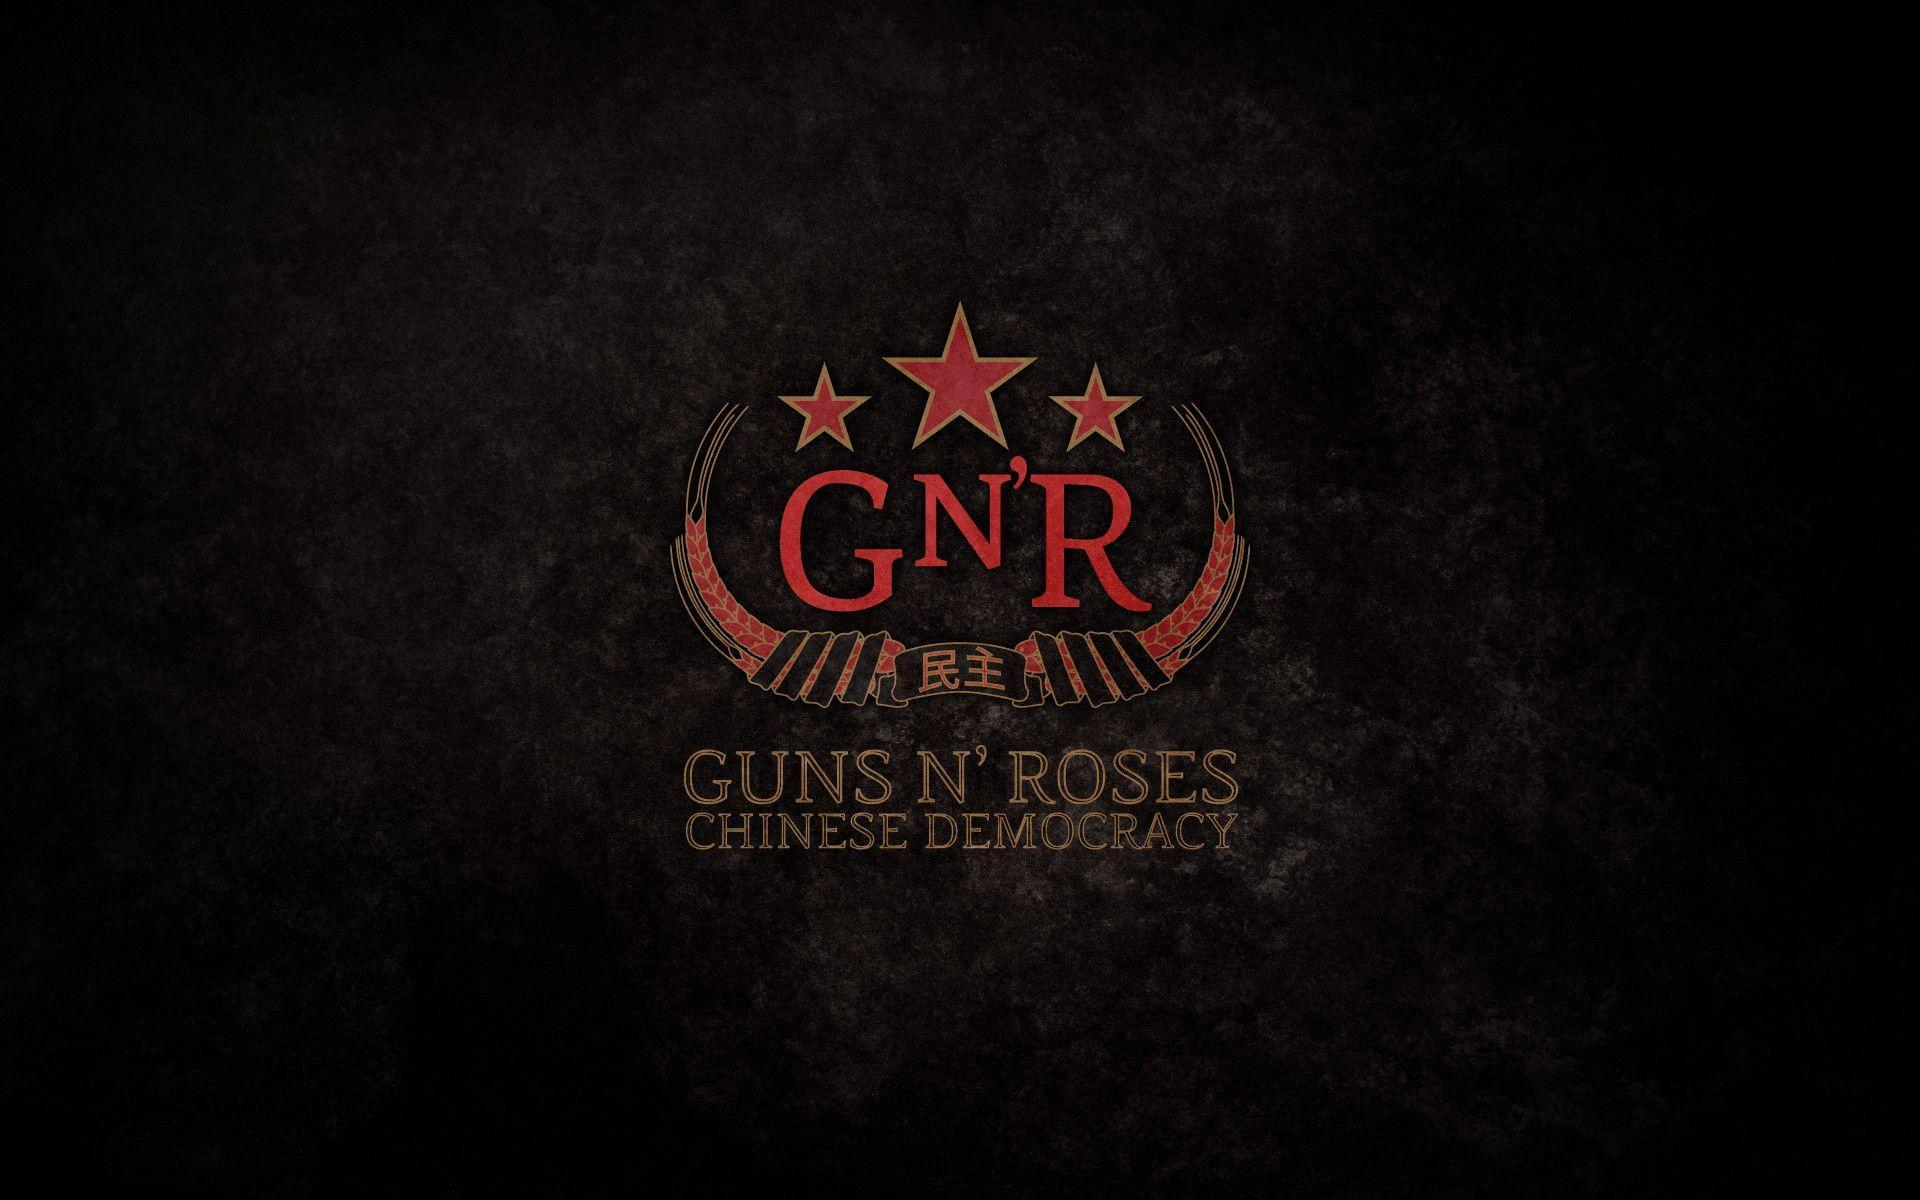 Guns n roses logo wallpapers wallpaper cave - Wallpaper guns and roses ...